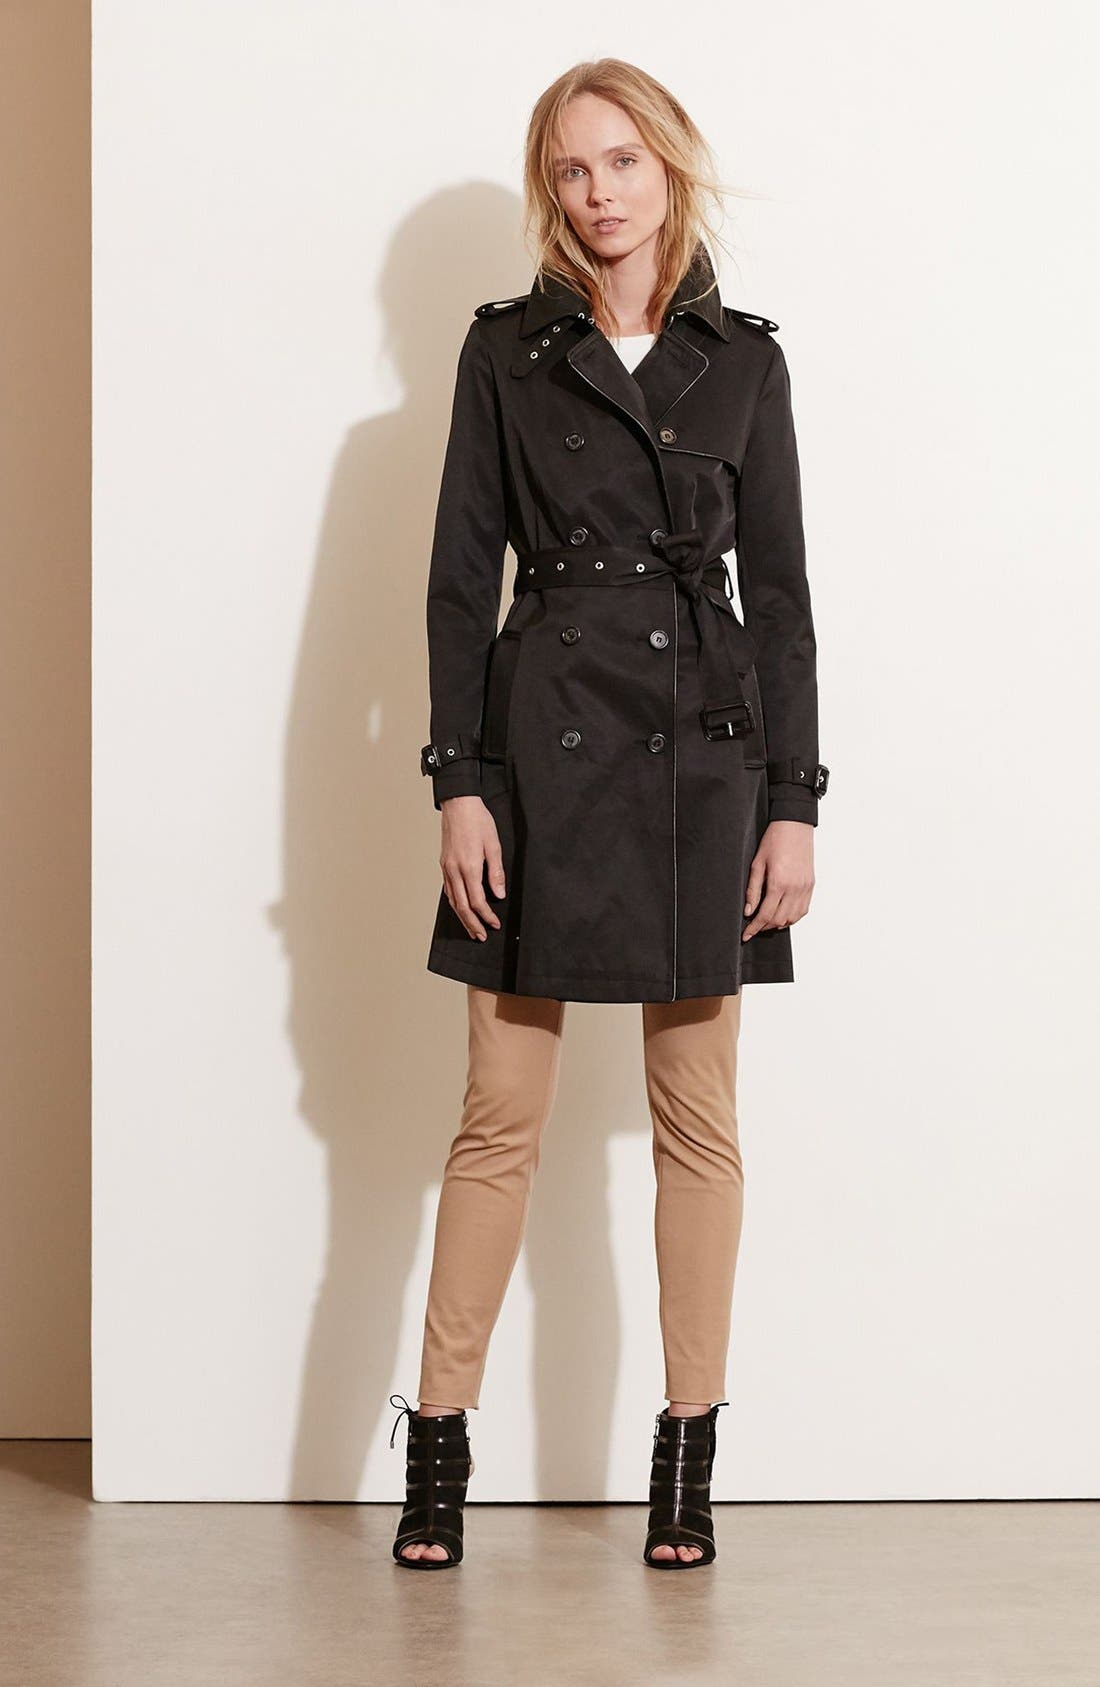 Alternate Image 1 Selected - Lauren Ralph Lauren Faux Leather Trim Trench Coat (Regular & Petite)